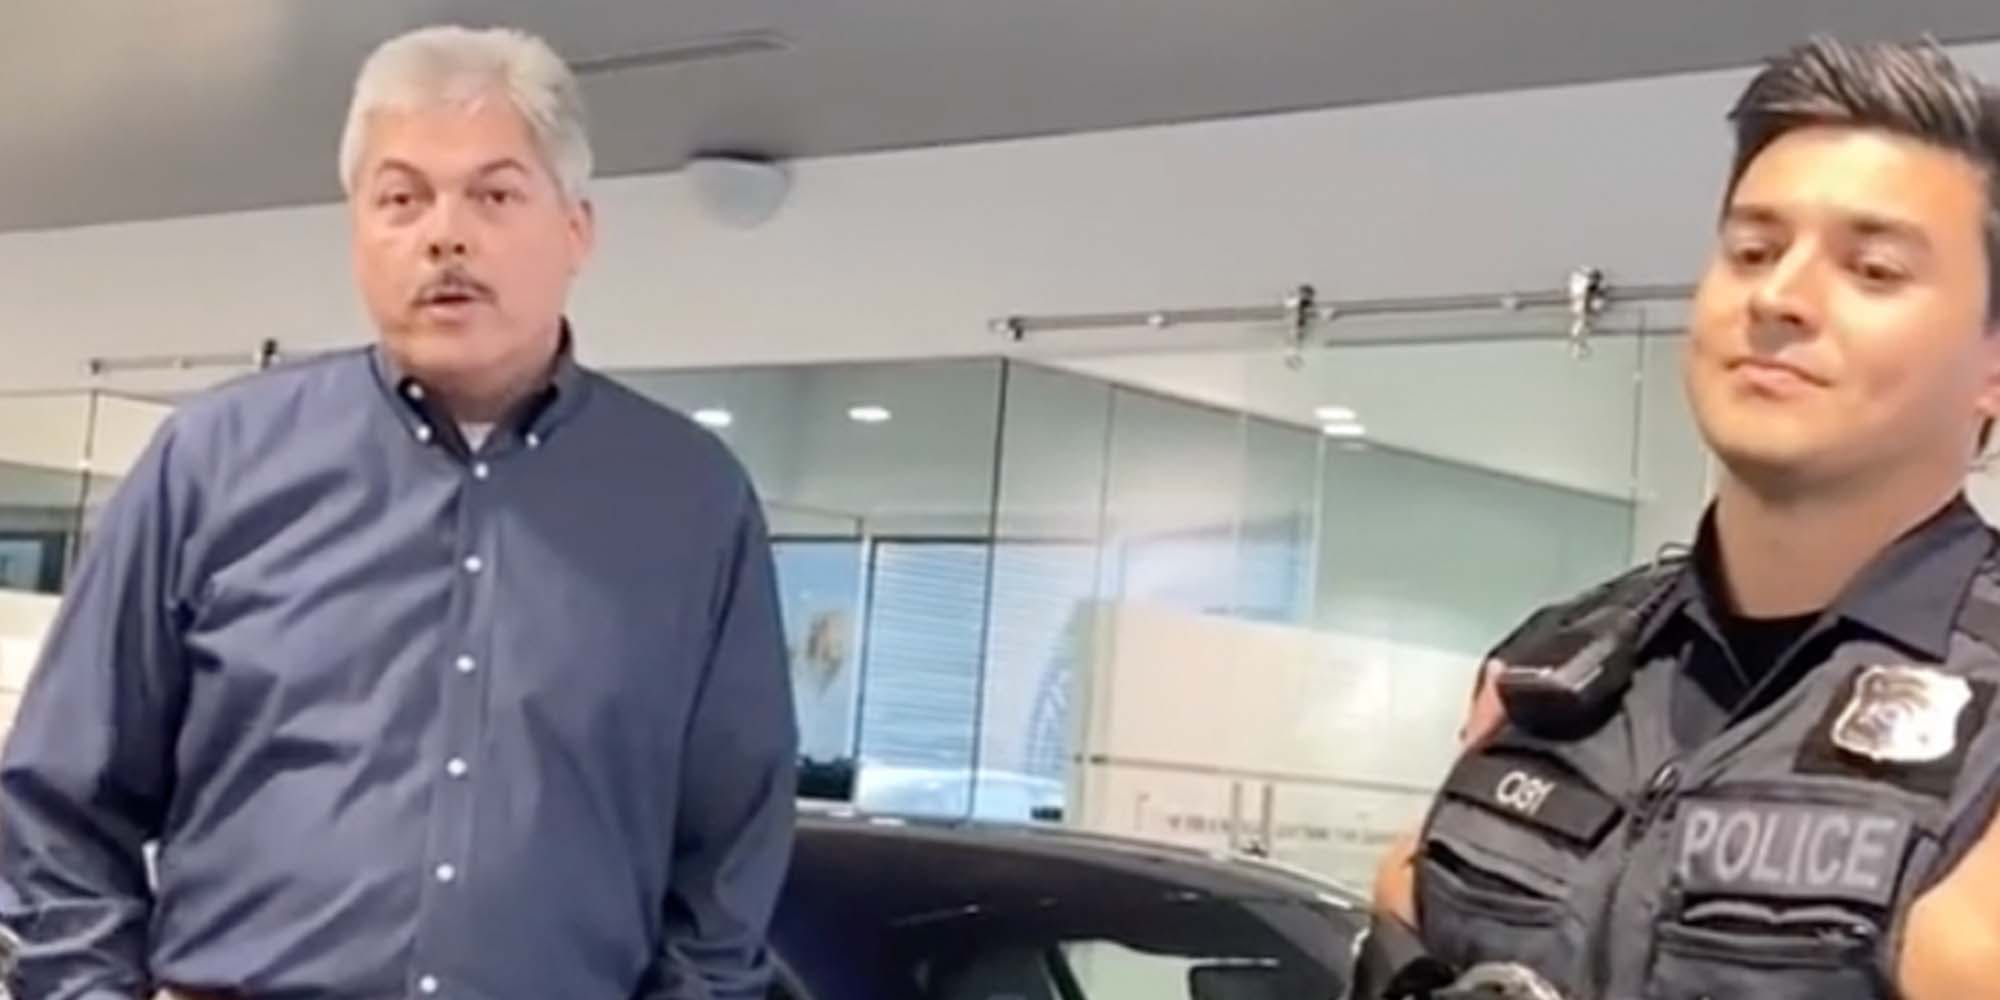 'Trying to buy a Porsche while Black': TikToker says dealership workers discriminated against him